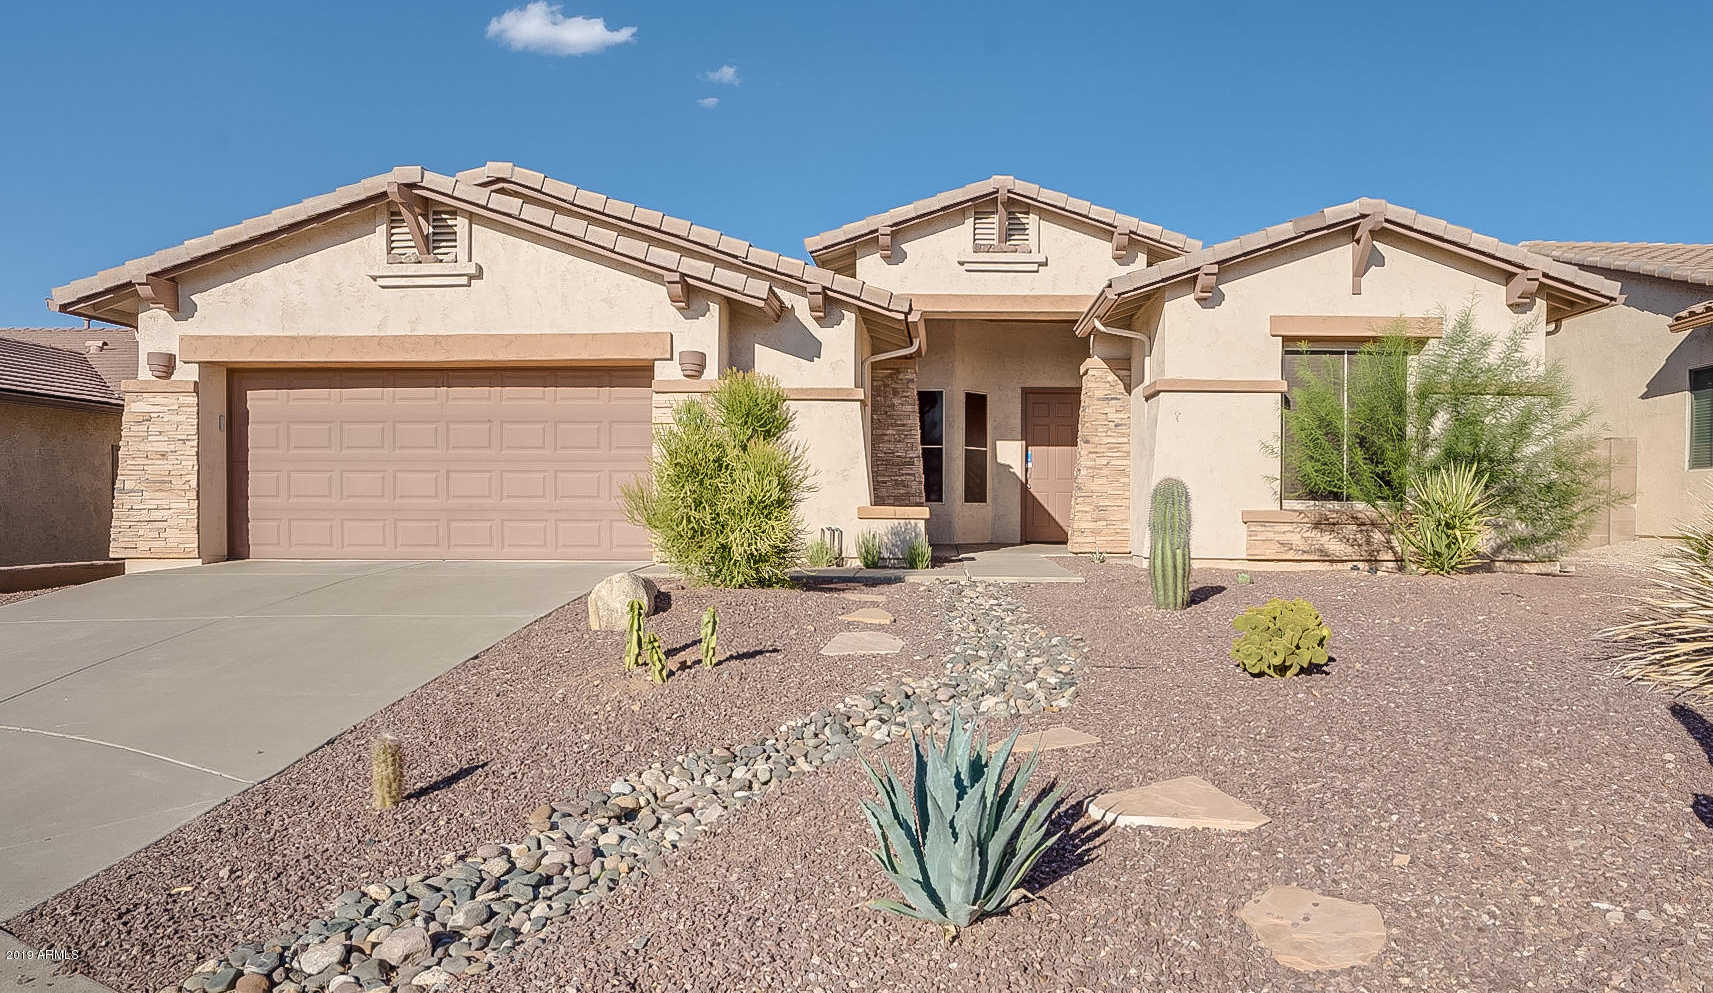 $300,000 - 3Br/2Ba - Home for Sale in Peralta Trails Unit I, Gold Canyon